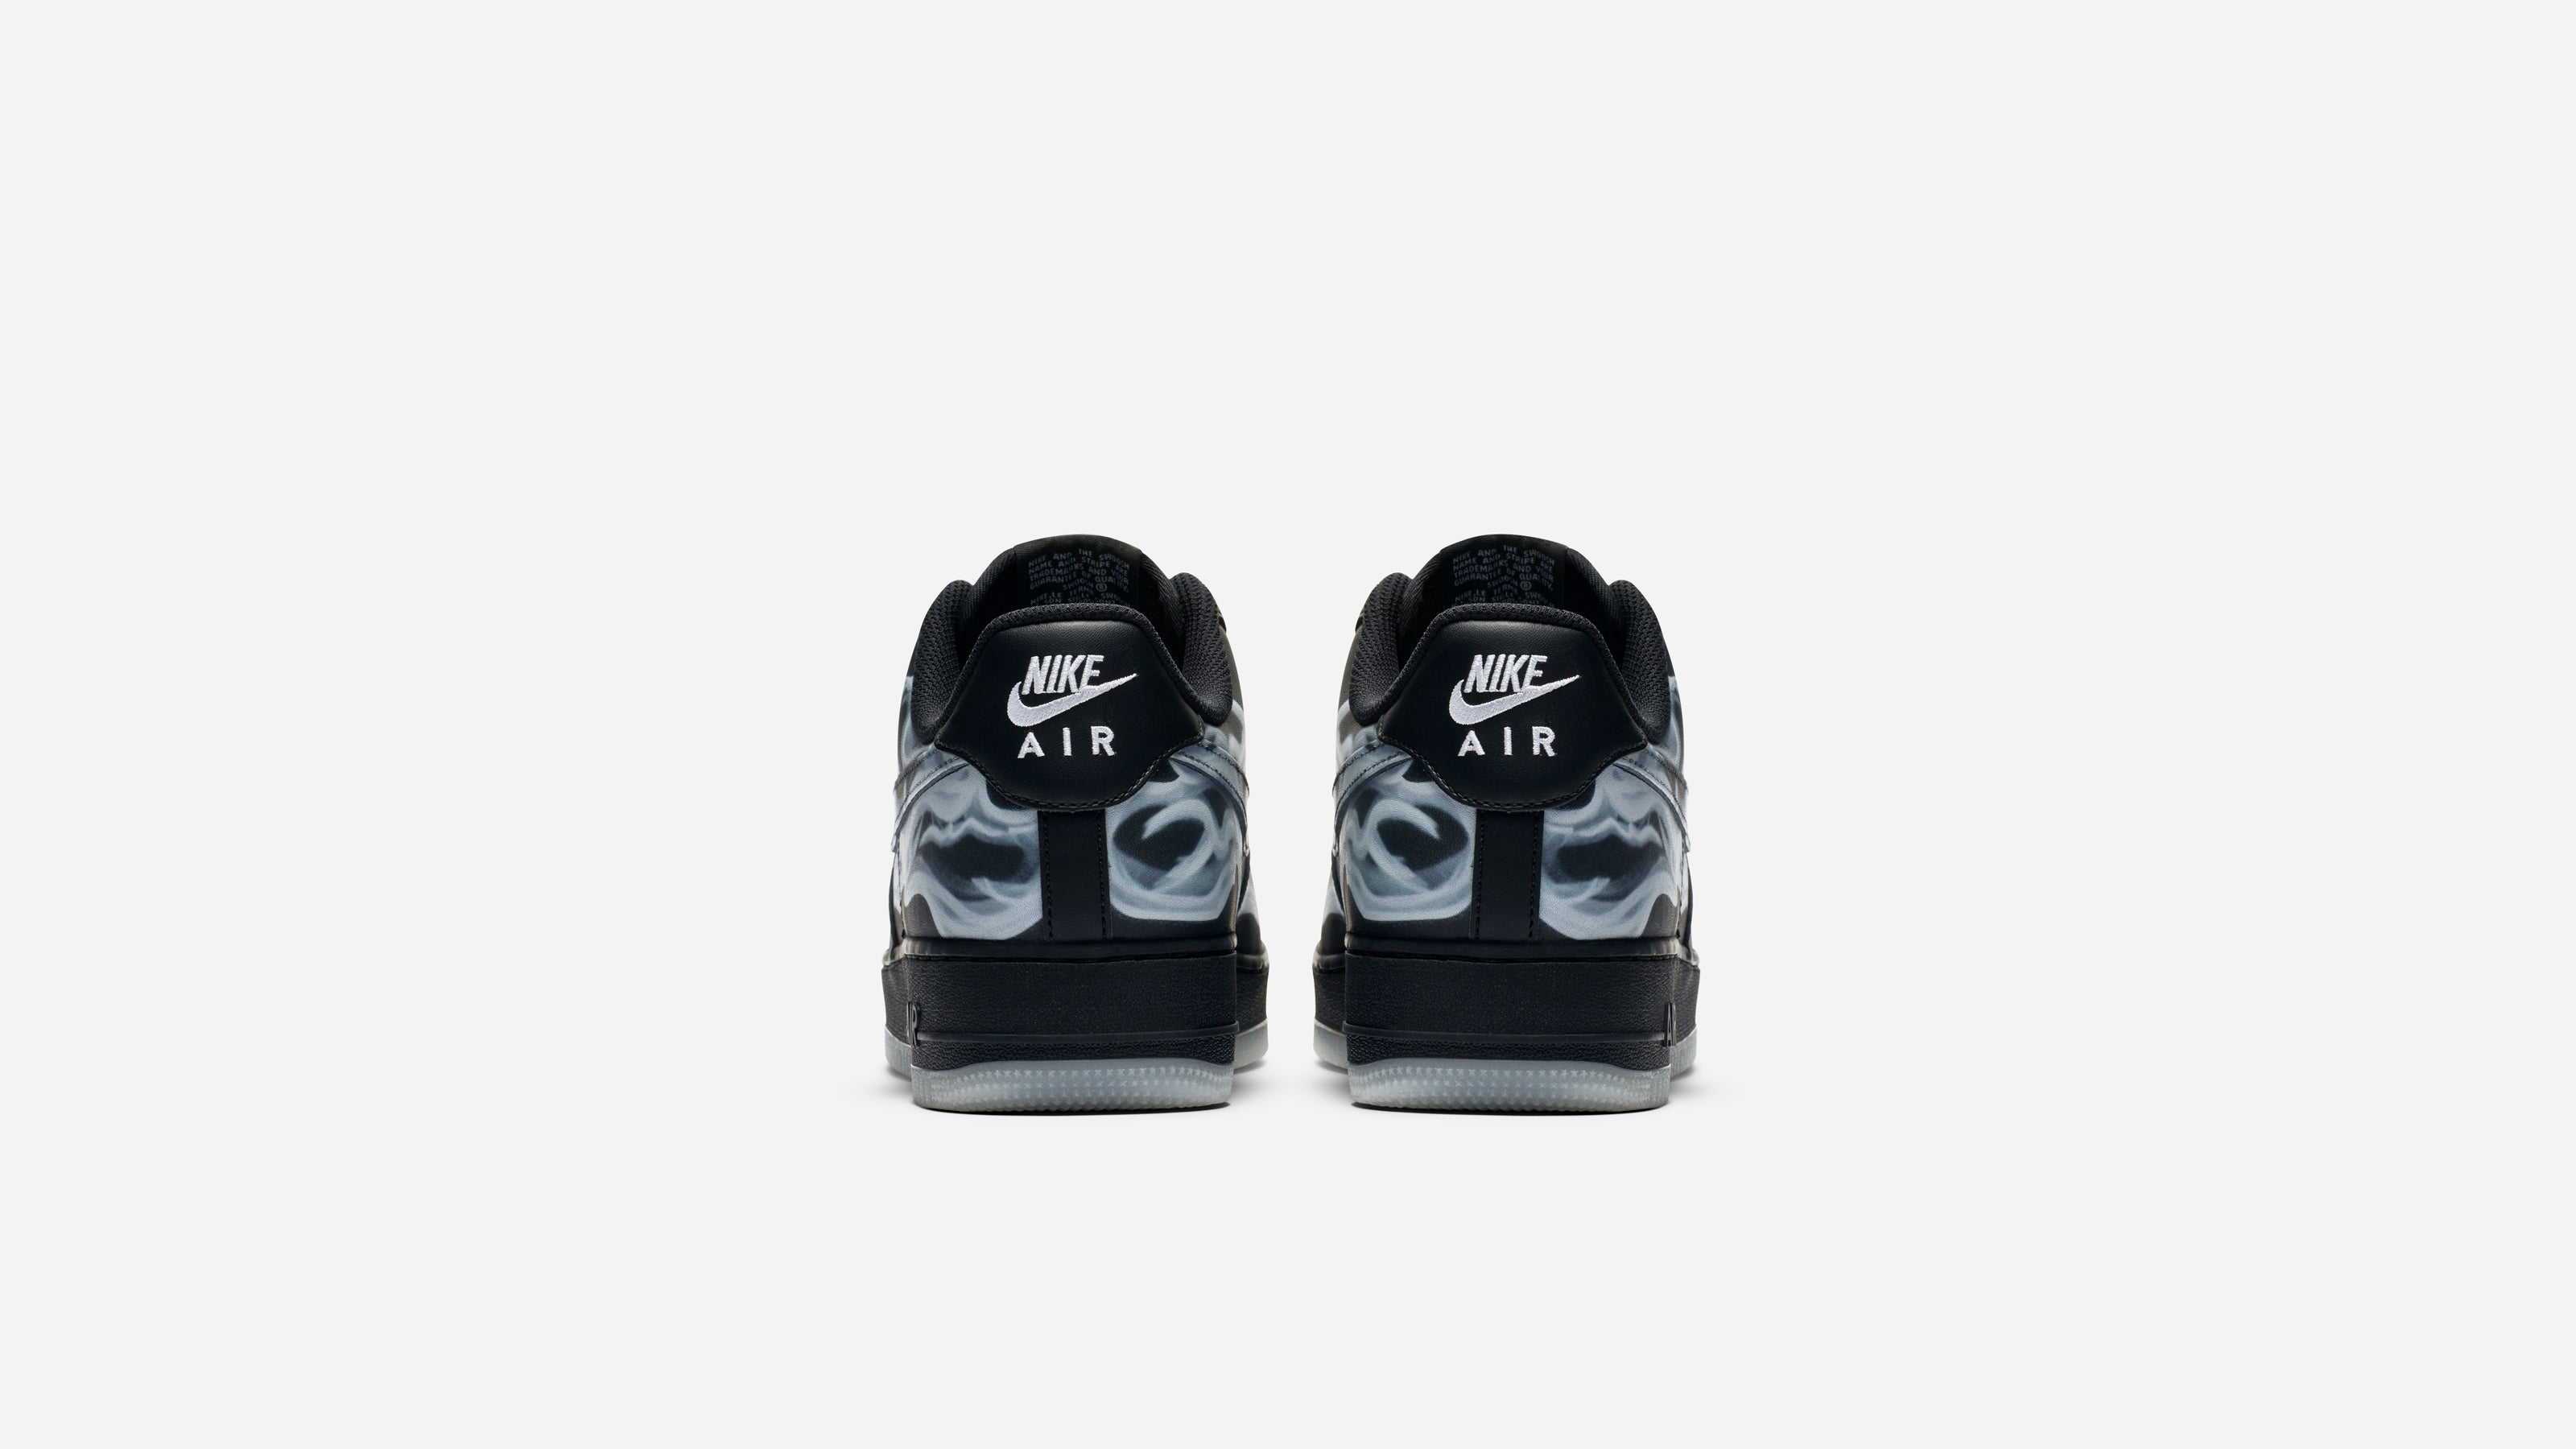 LAUNCHES: Nike Air Force 1 '07 Skeleton QS - Hanon